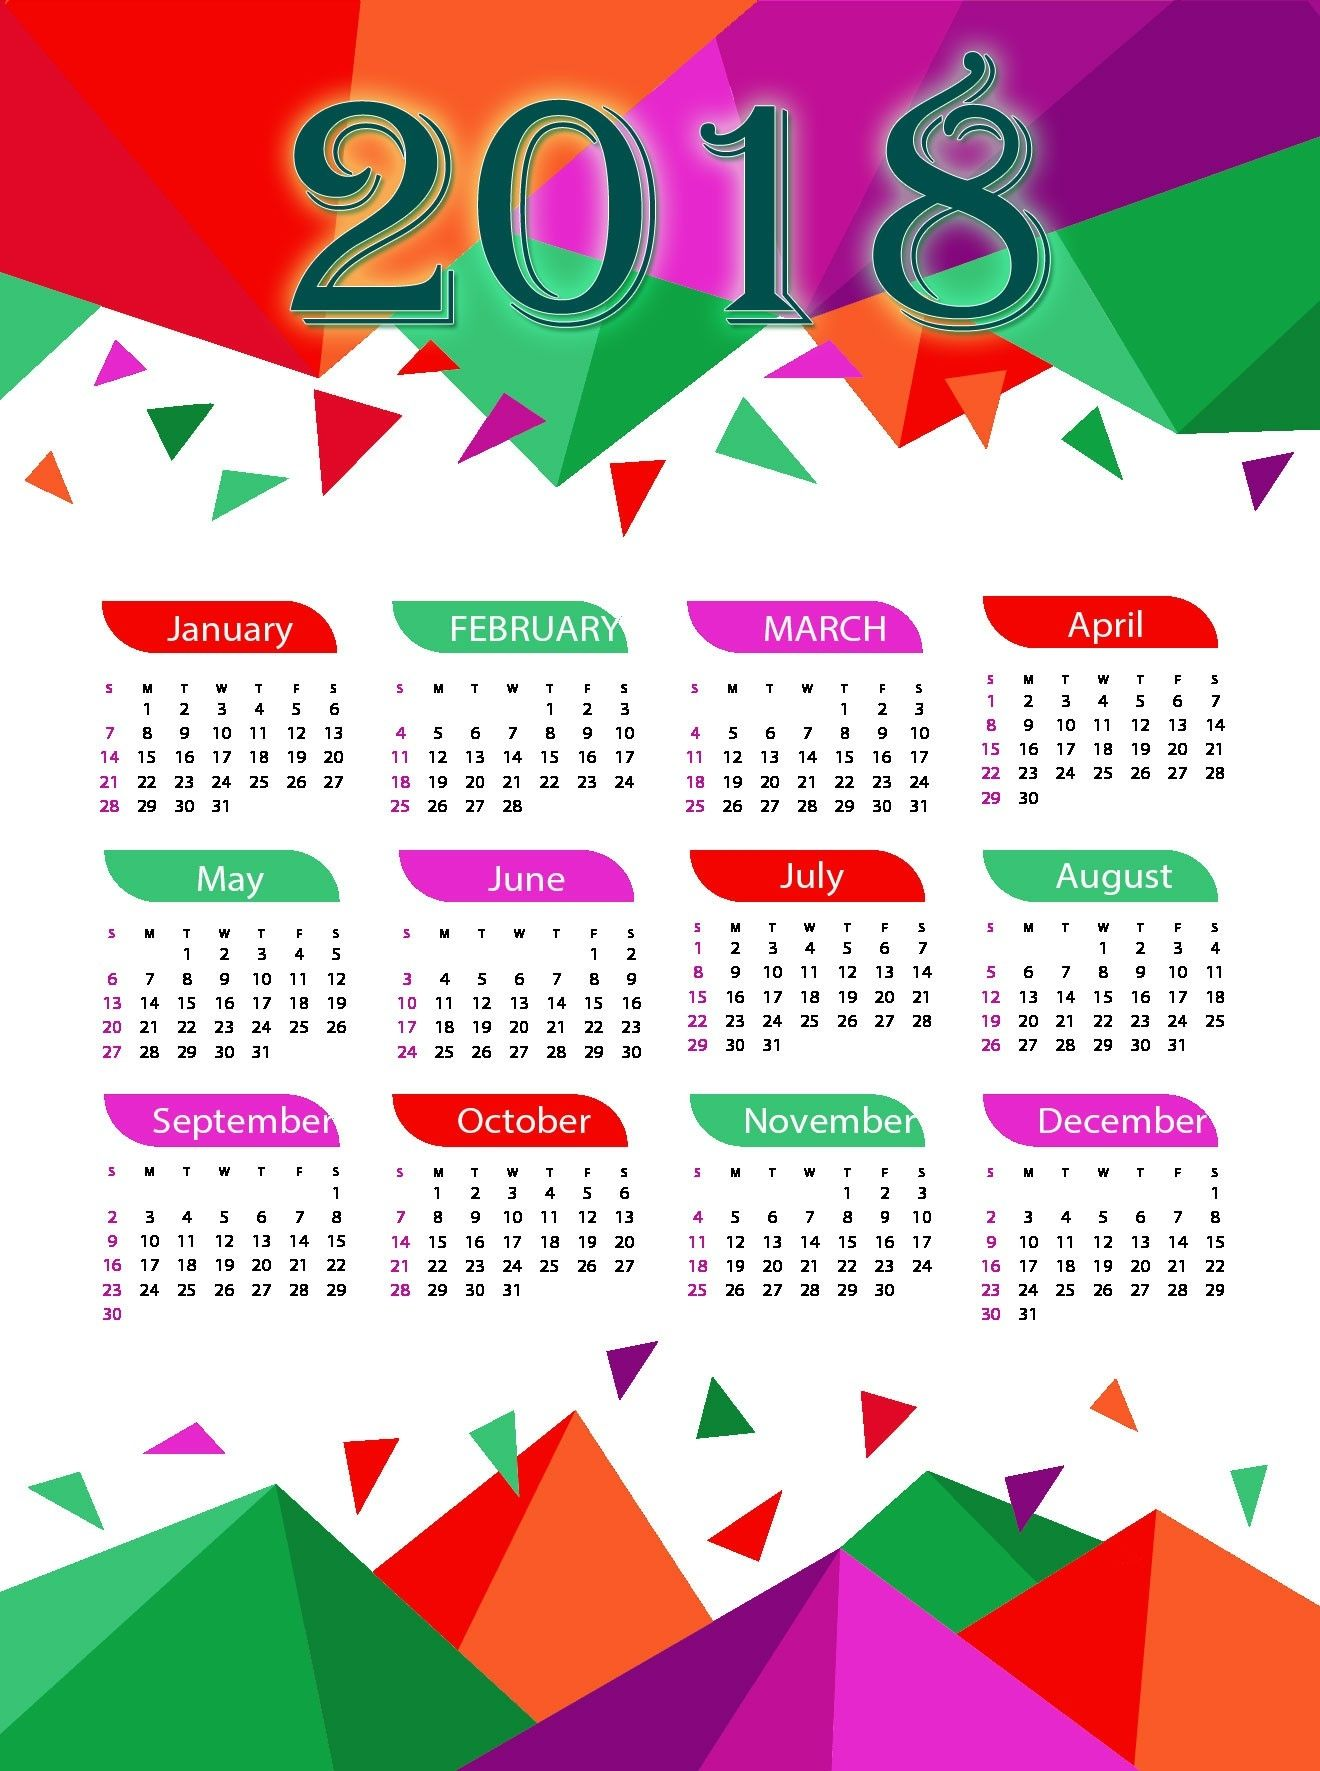 full year pocket calendar 2018 calendar 2018 design full year pocket calendar 2018